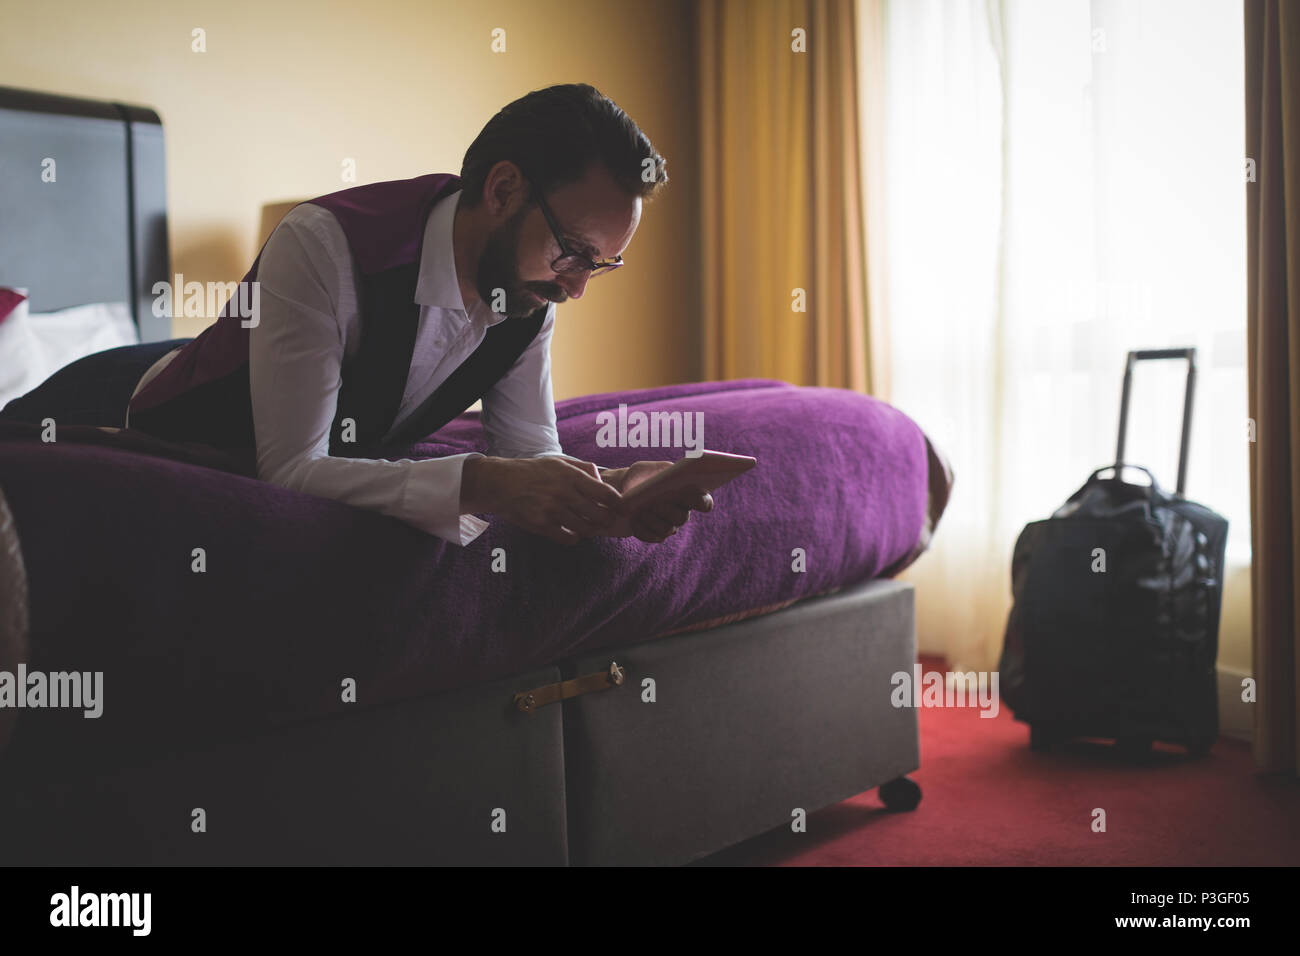 Businessman using digital tablet on bed - Stock Image